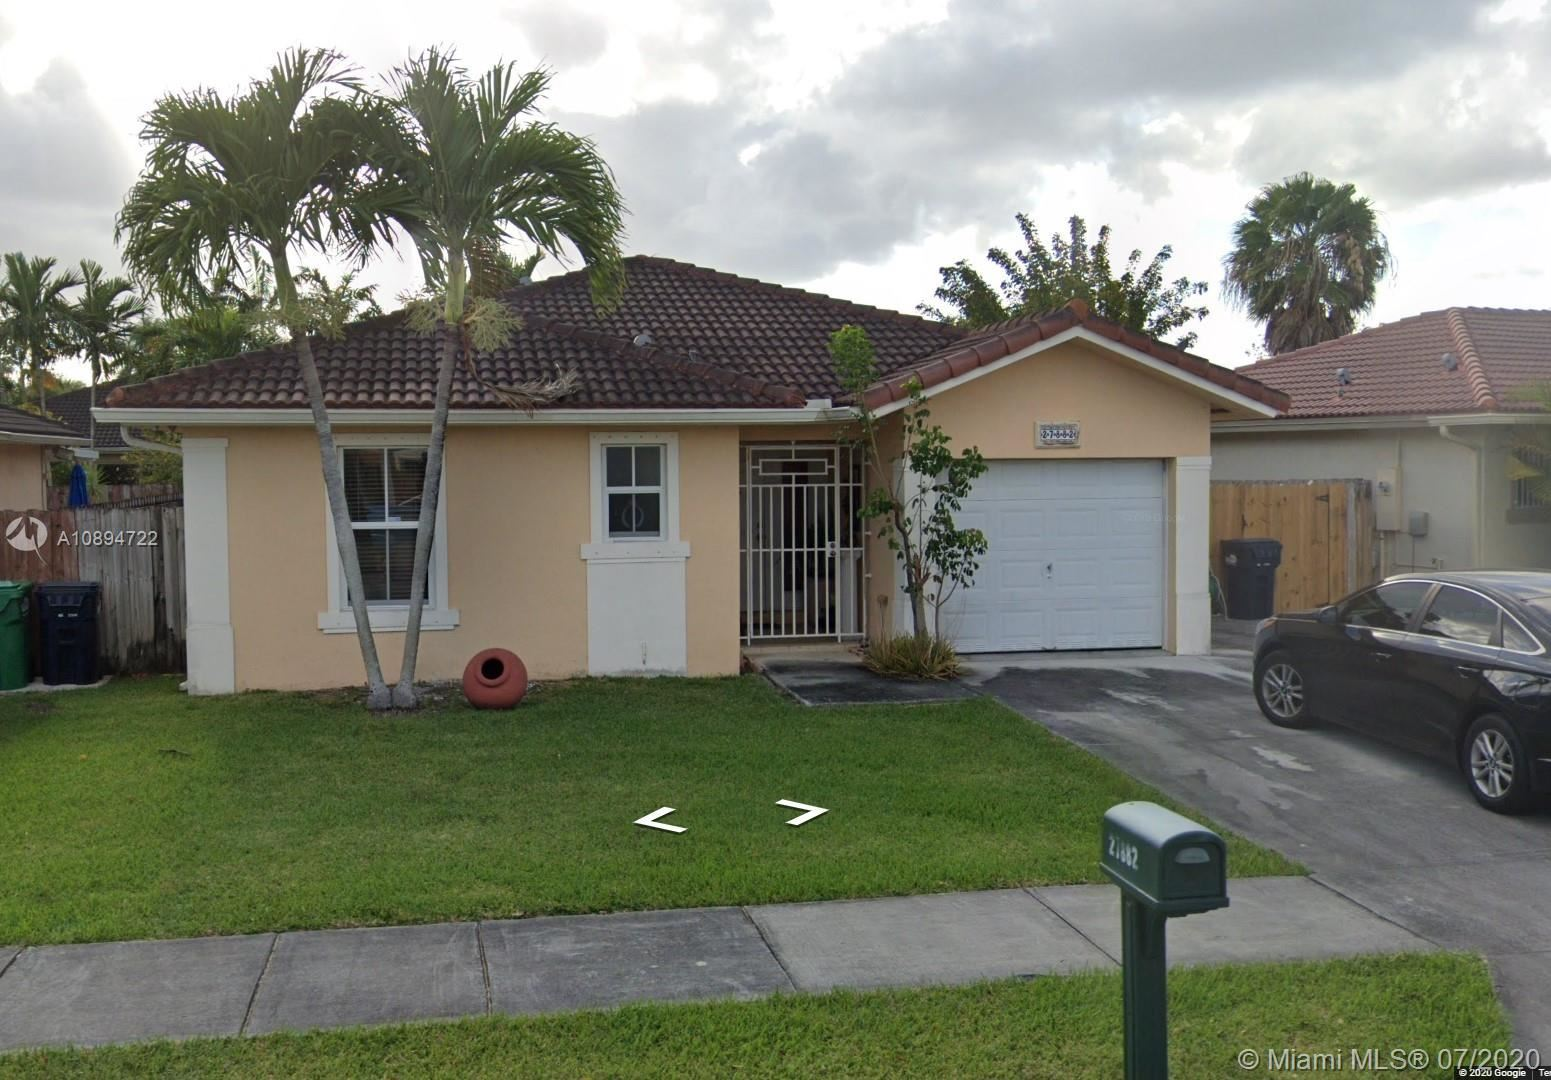 27882 SW 134th Pl, Homestead, FL 33032 - #: A10894722